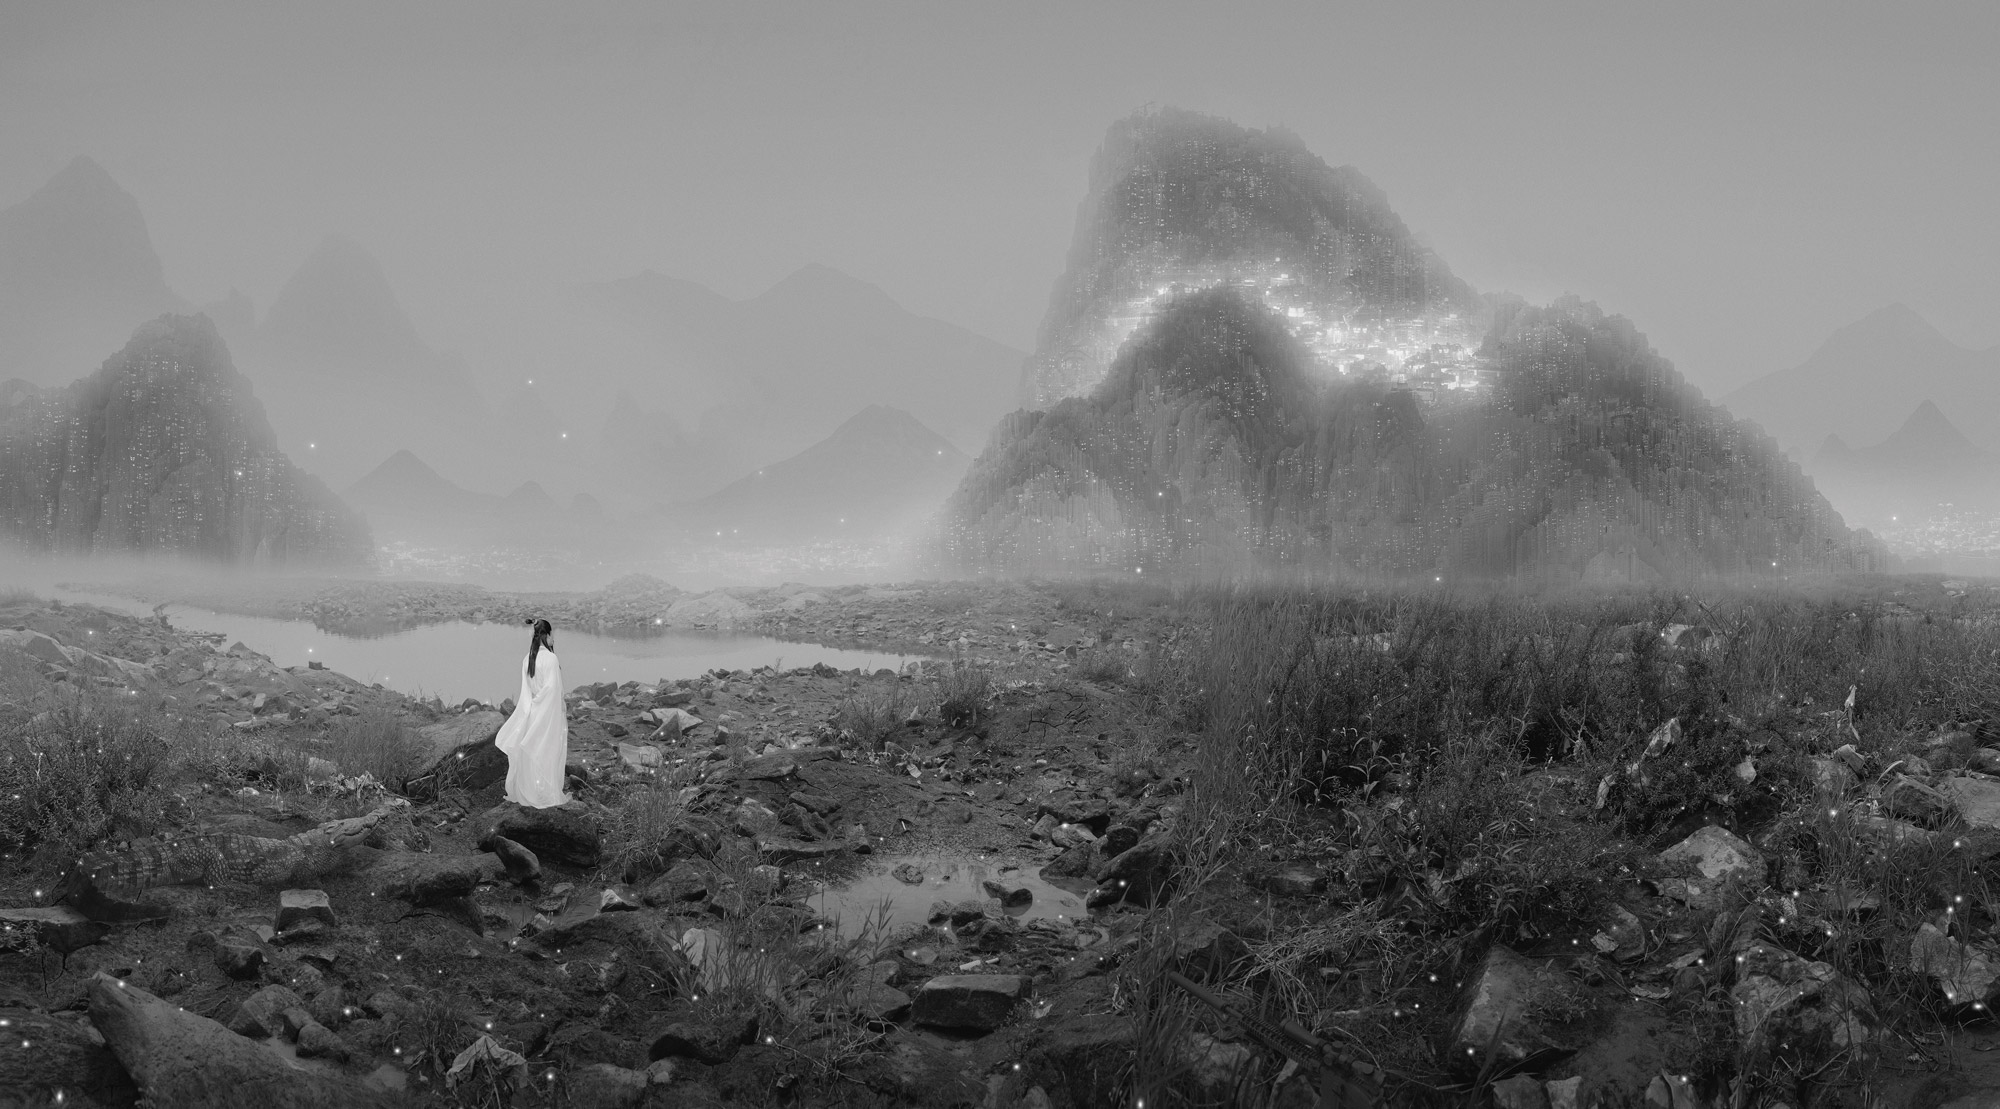 The Silent Valley. Courtesy of Galerie Paris-Beijing.